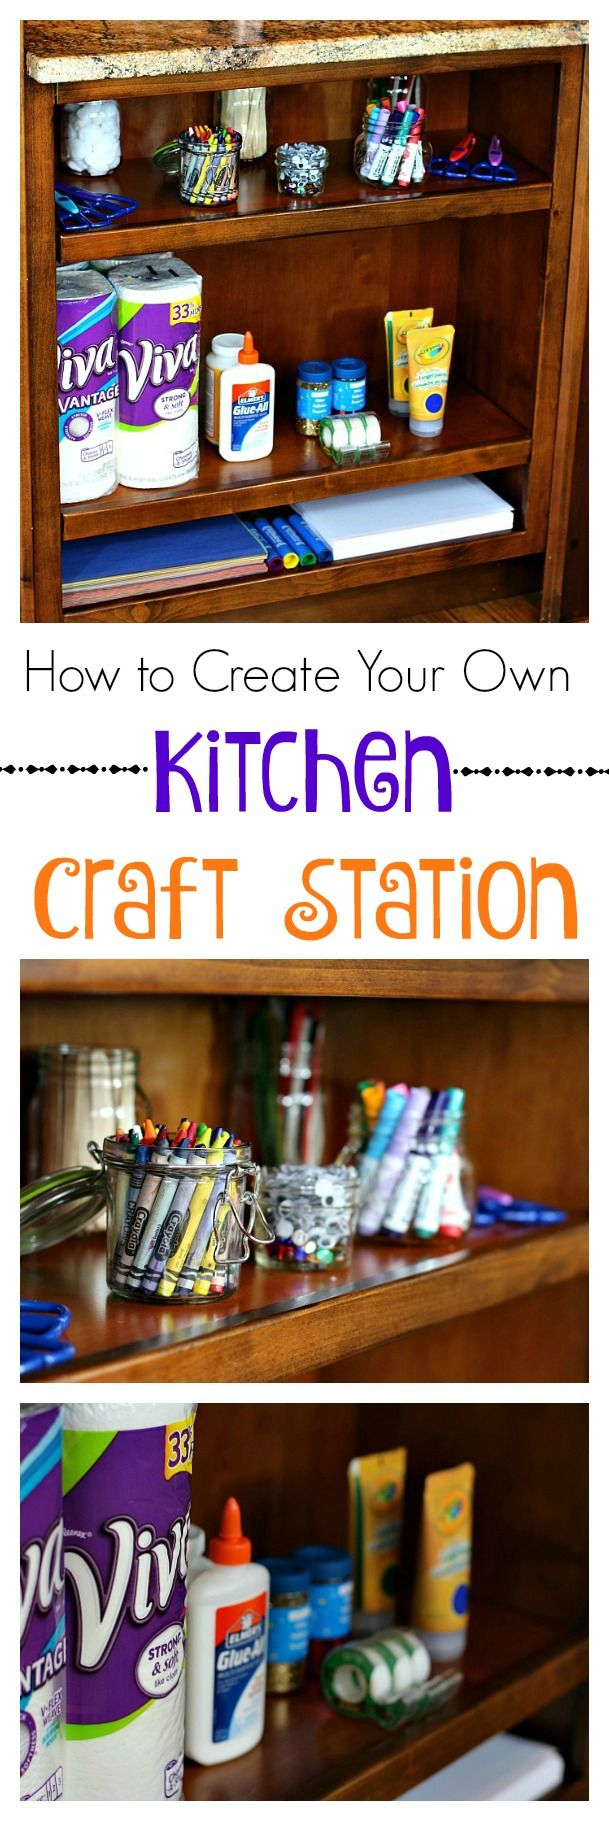 If You Love Crafting You Don 39 T Want To Miss This Easy Tutorial On How To Create Your Own